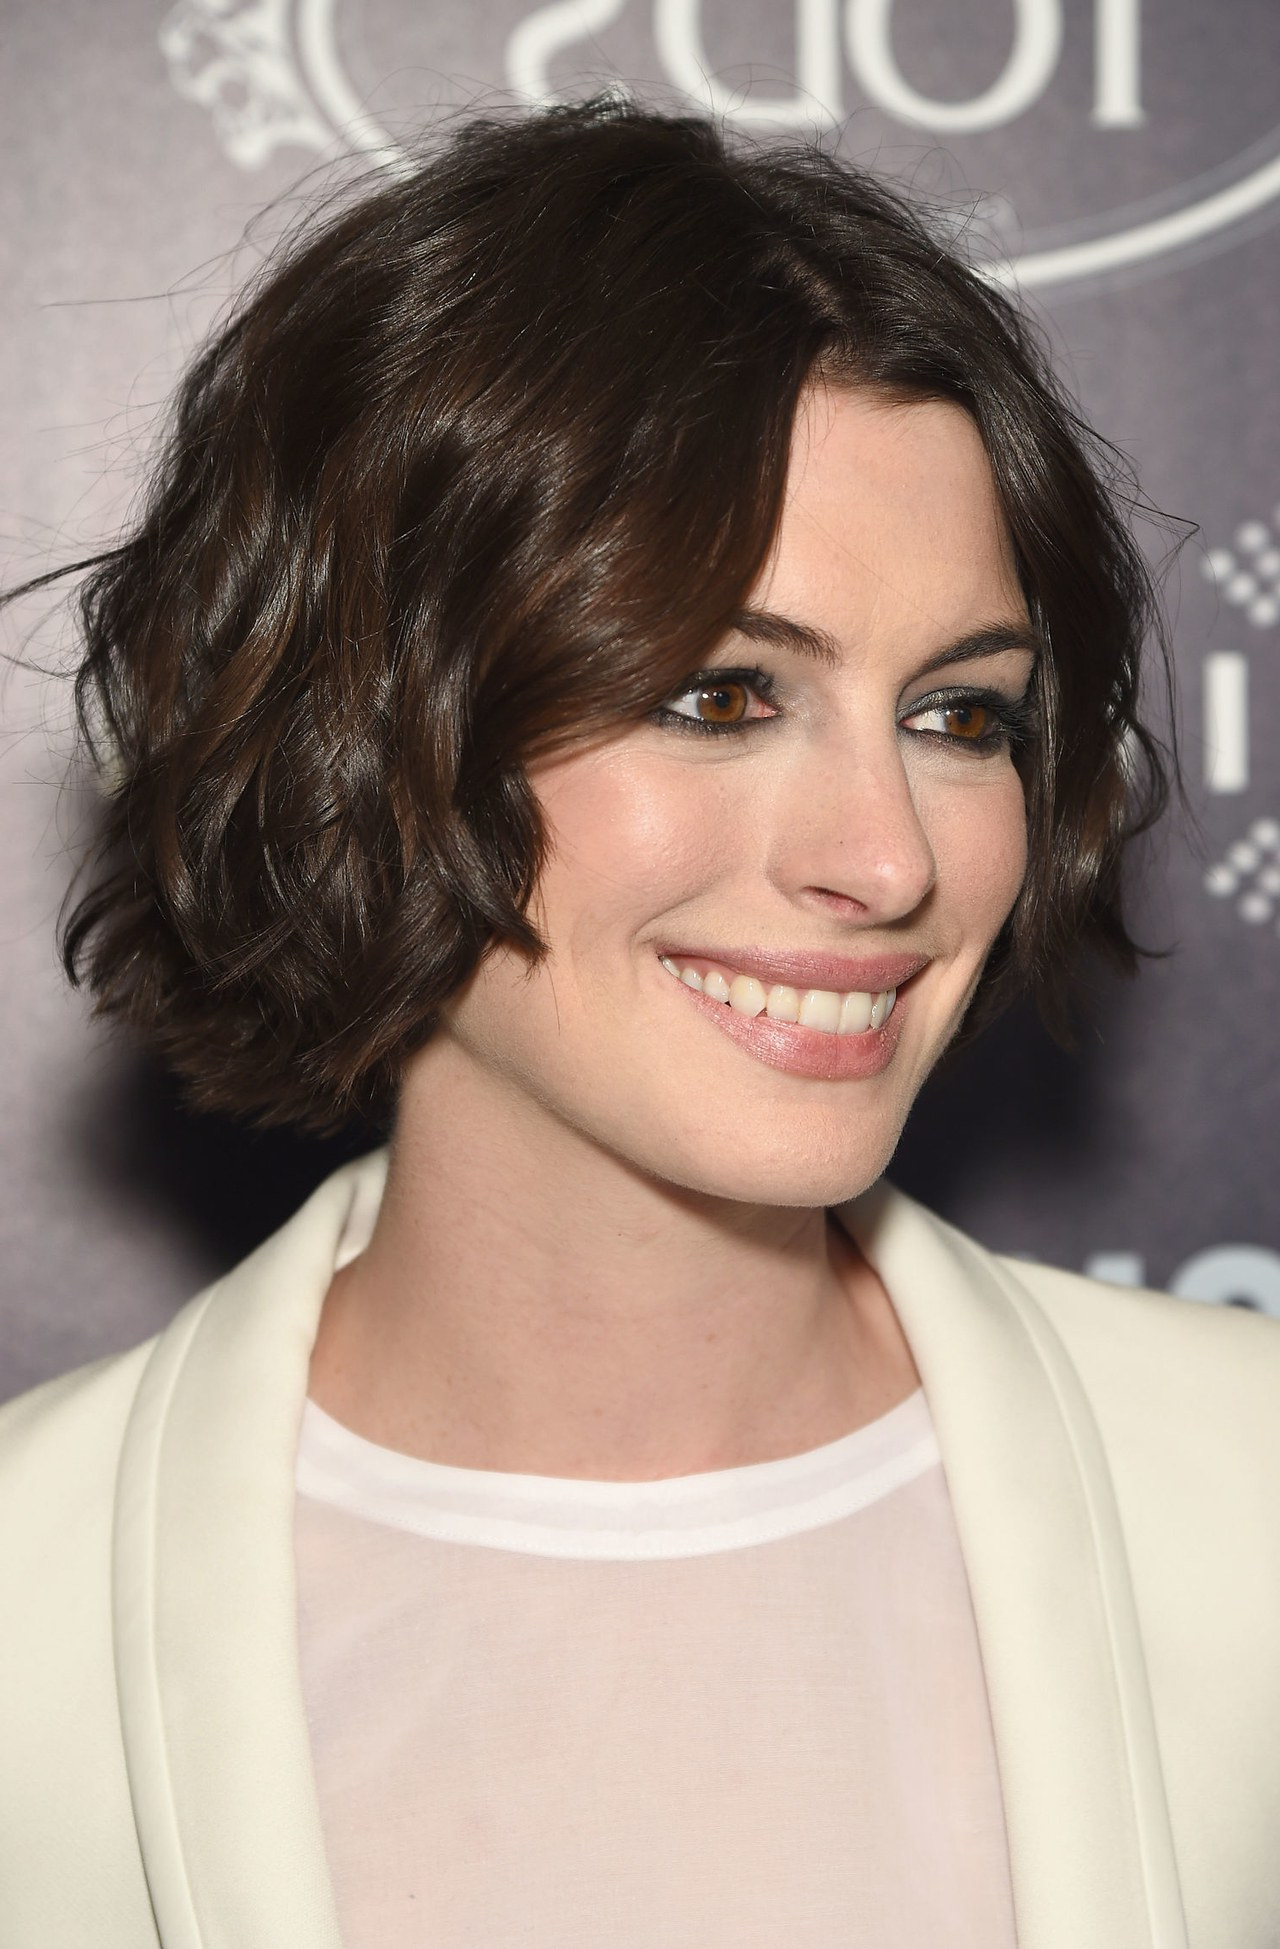 Anne Hathaway Perfects The Short Beachy Wave Hairstyle | Glamour Within Anne Hathaway Short Haircuts (View 9 of 25)